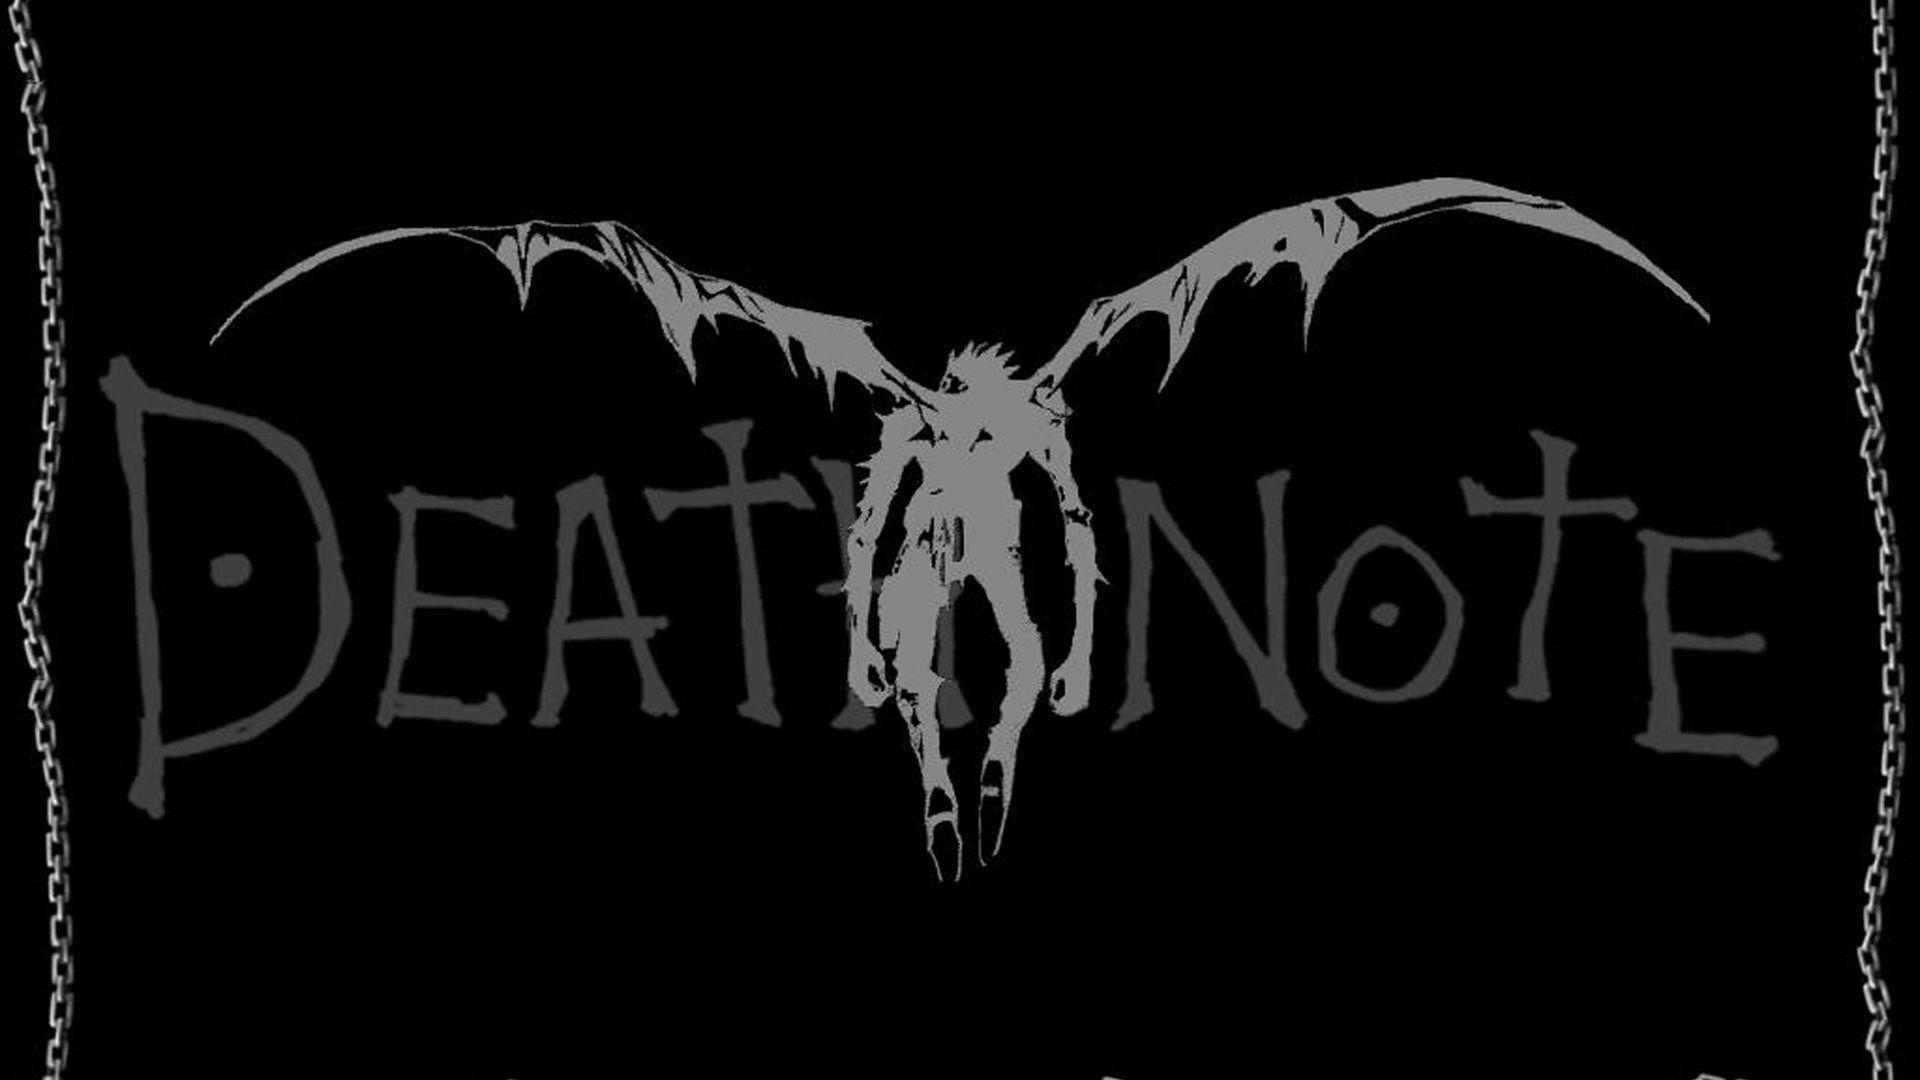 Death Note Devil Anime Wallpaper Desktop #7362 Wallpaper | High ...